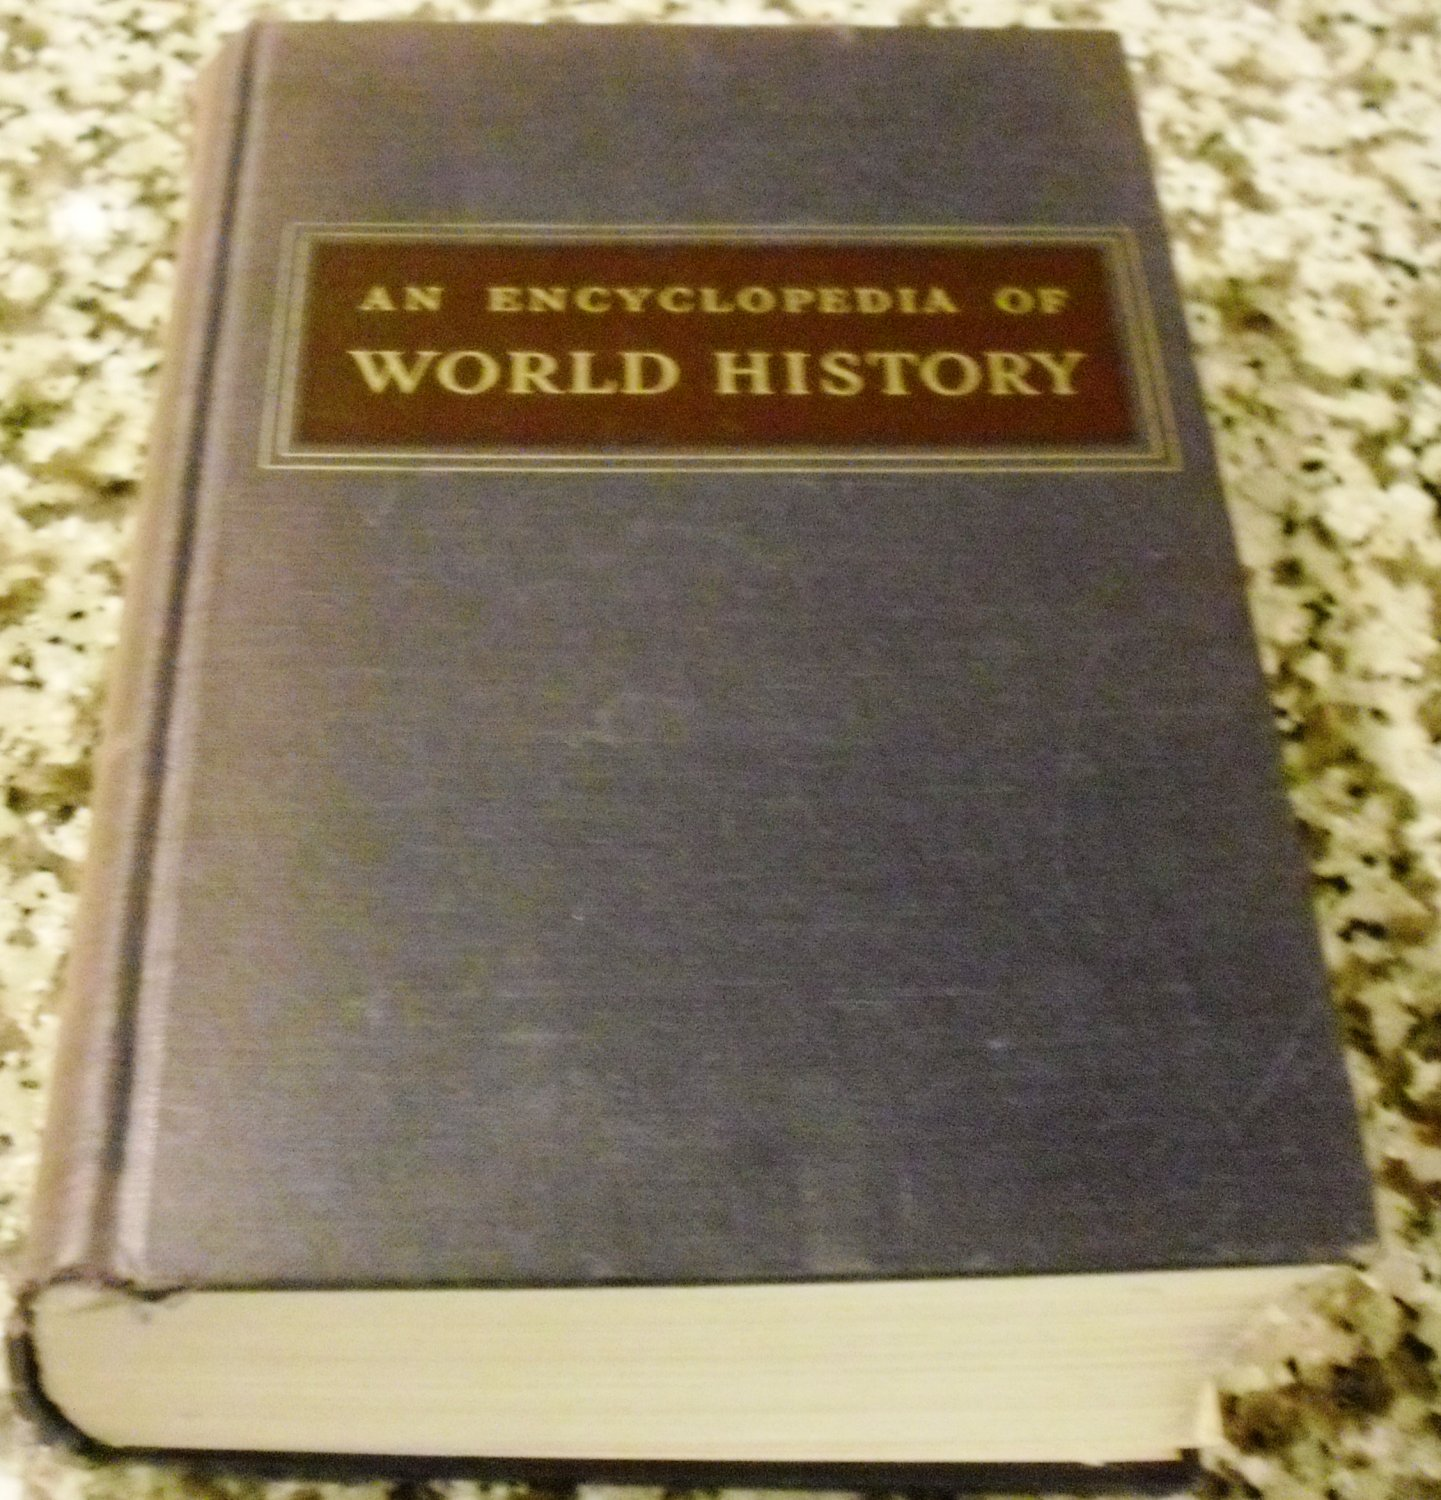 An Encyclopedia of World History by William L Langer (1960)